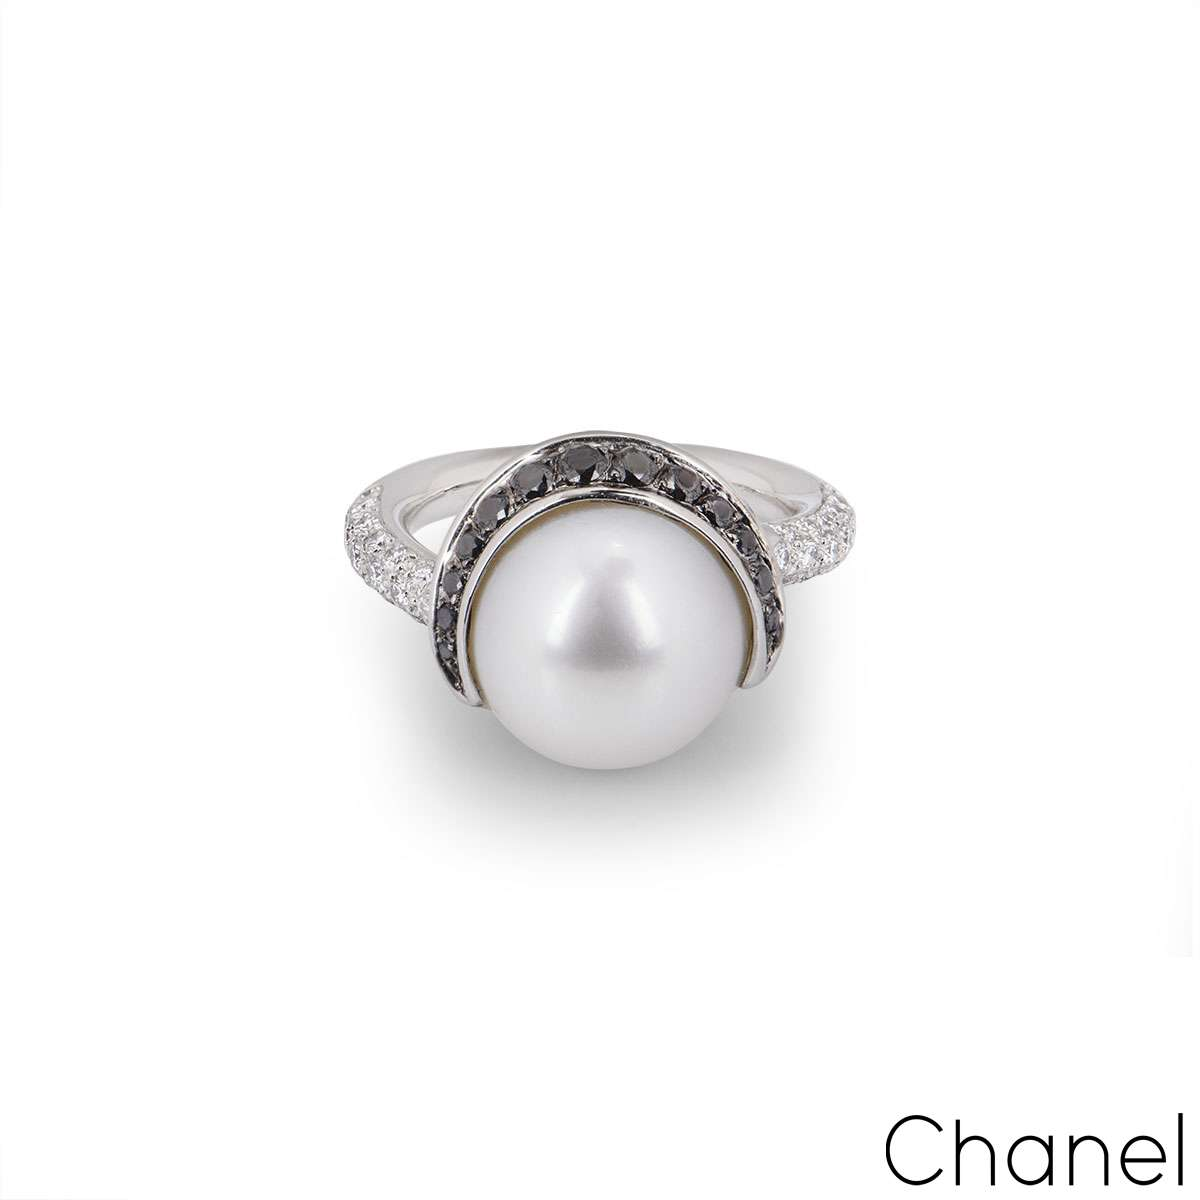 Chanel Platinum Diamond and Pearl Dress Ring